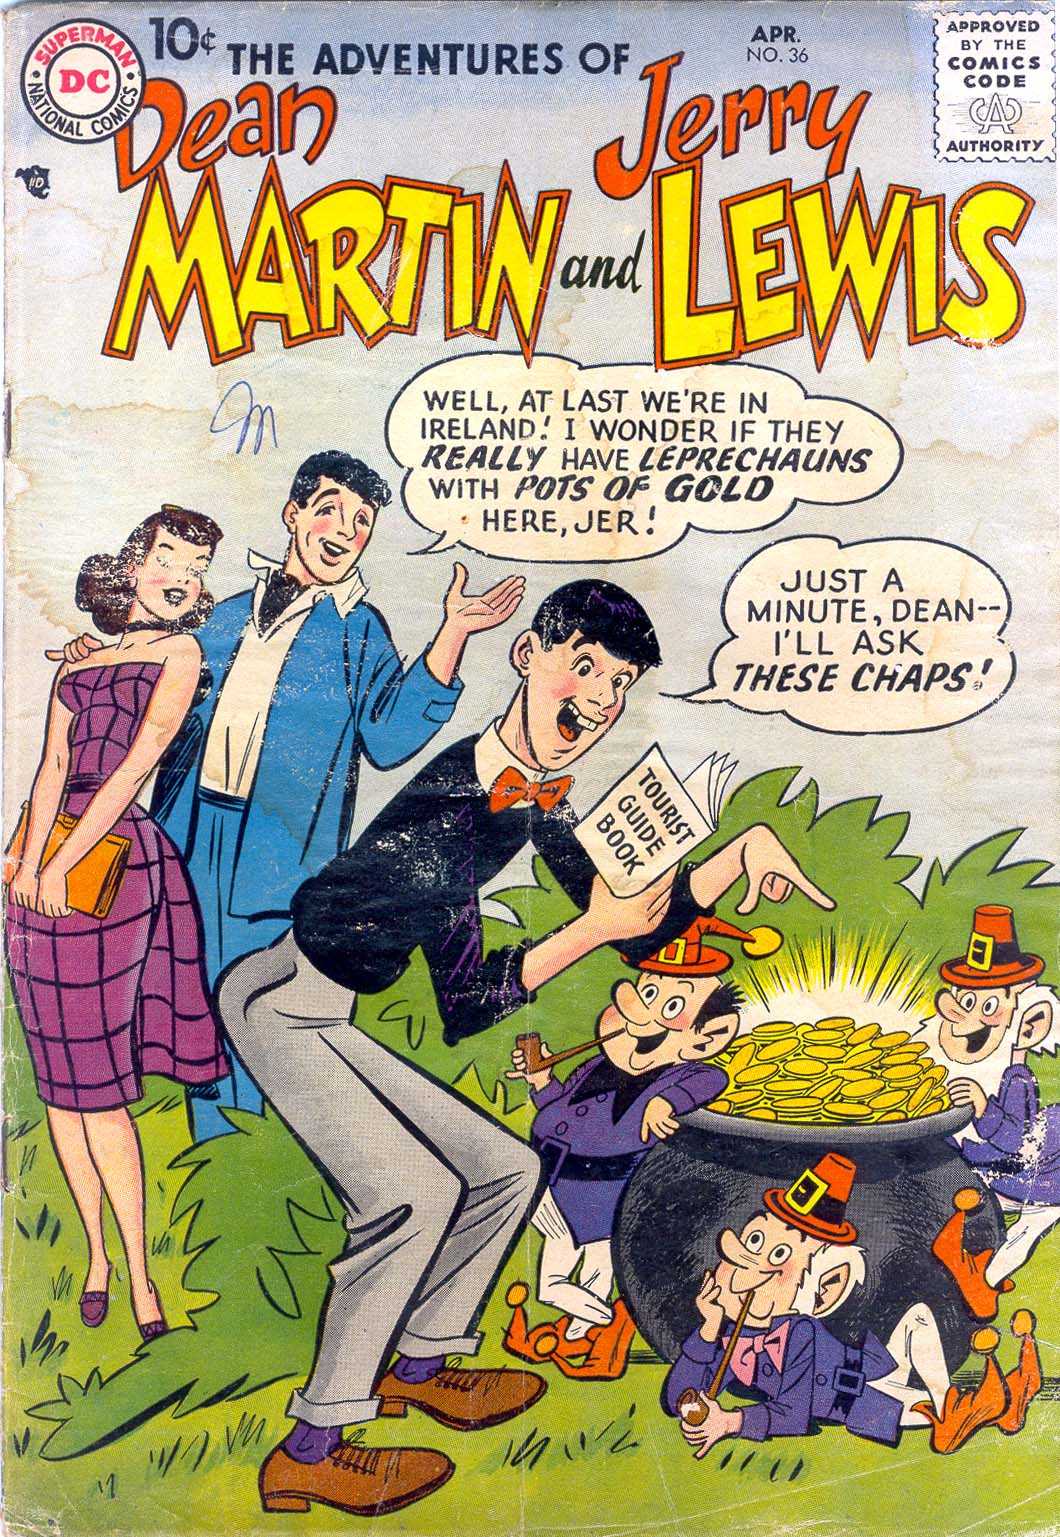 The Adventures of Dean Martin and Jerry Lewis 36 Page 1